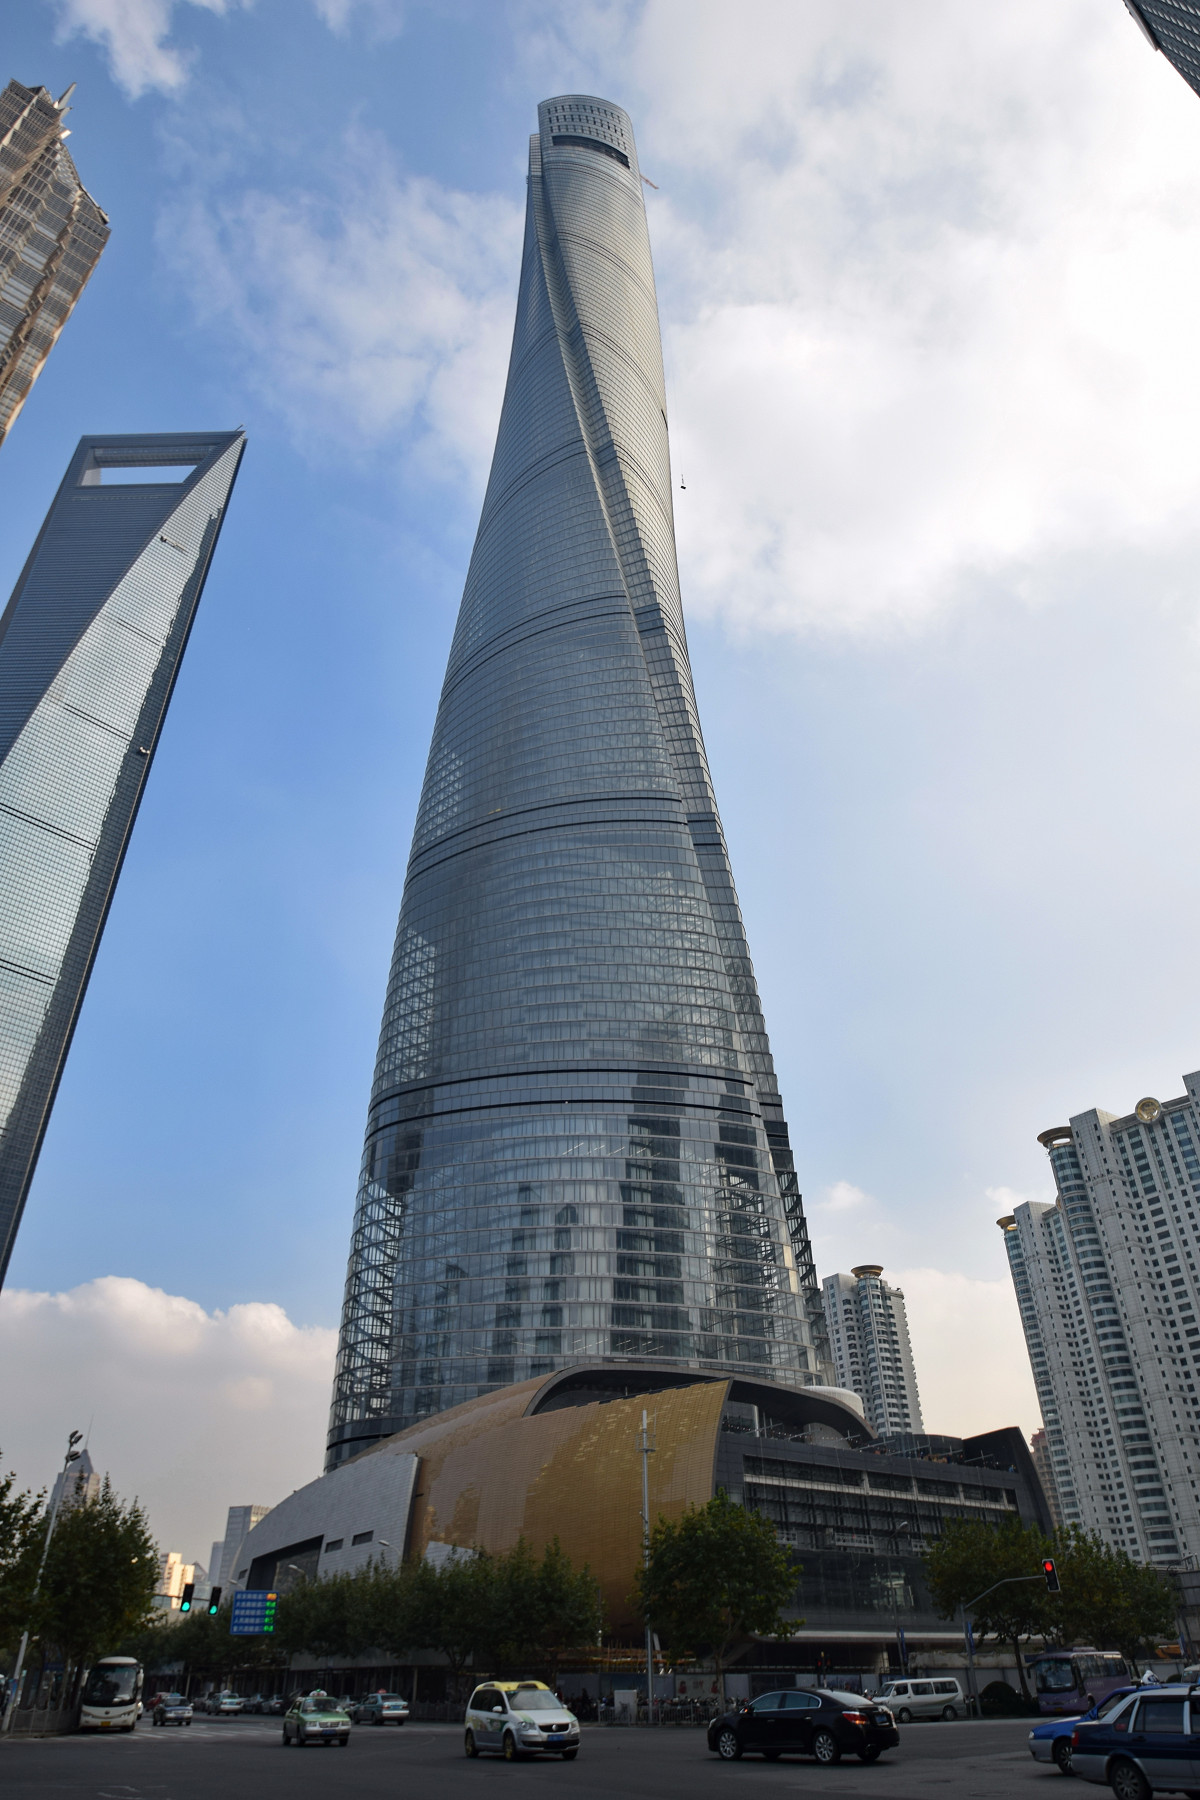 Shanghai Tower Wikipedia